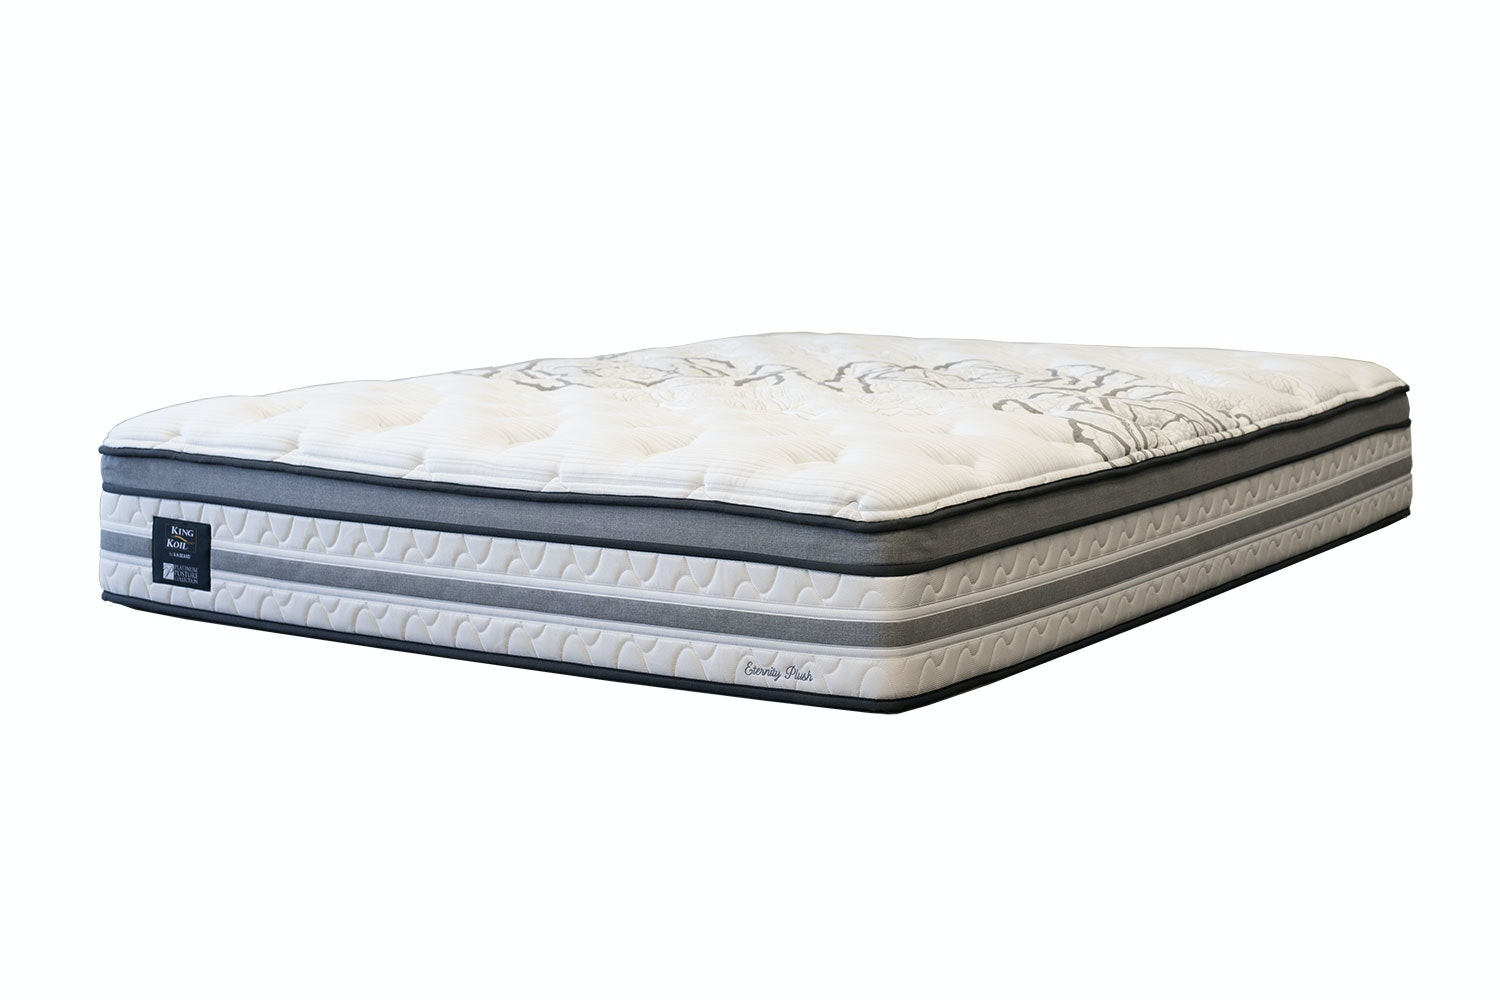 Eternity Plush King Mattress by King Koil